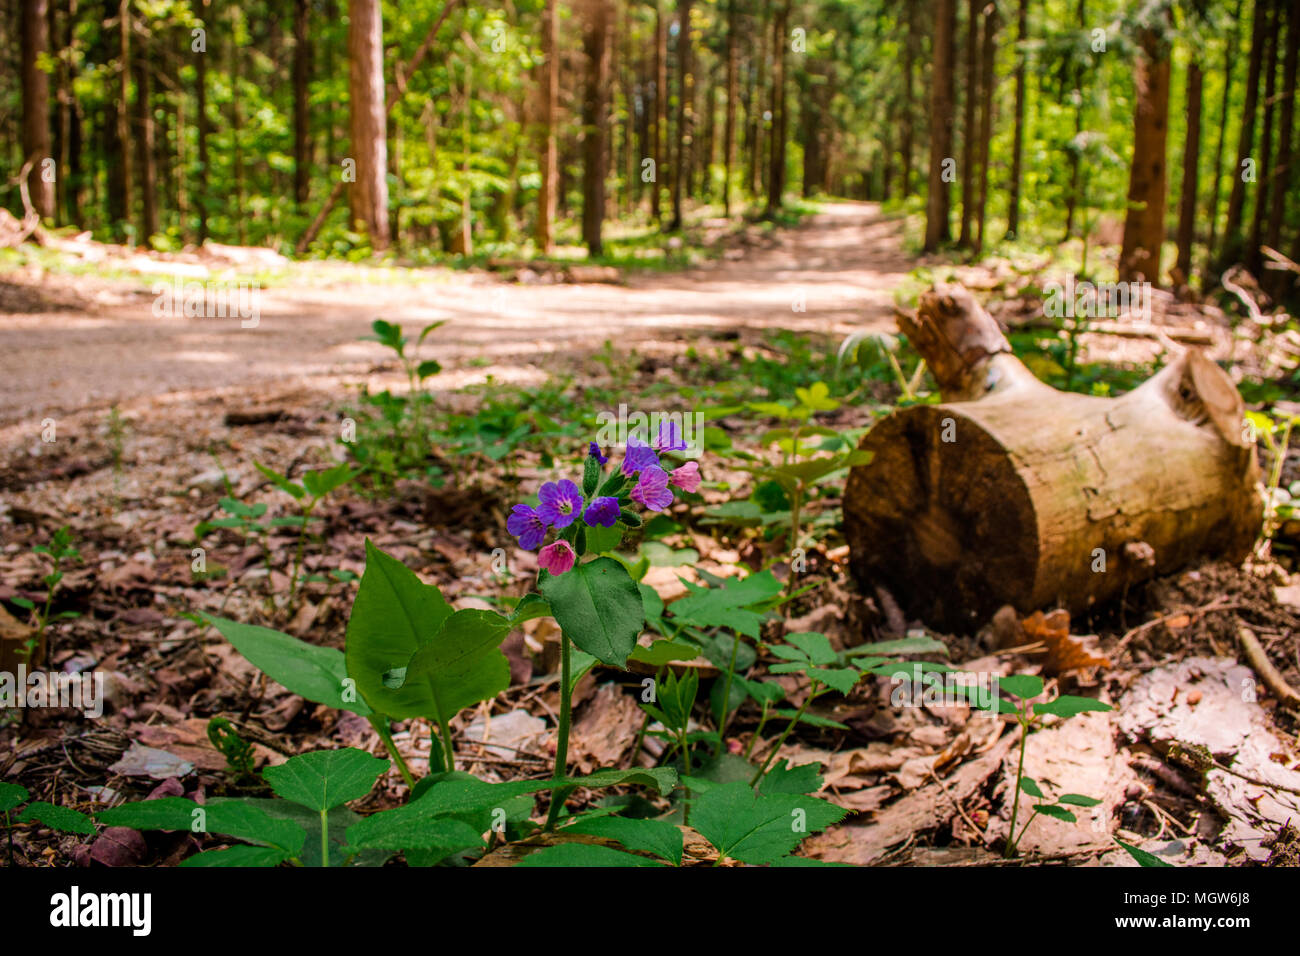 Firs forrest - Stock Image